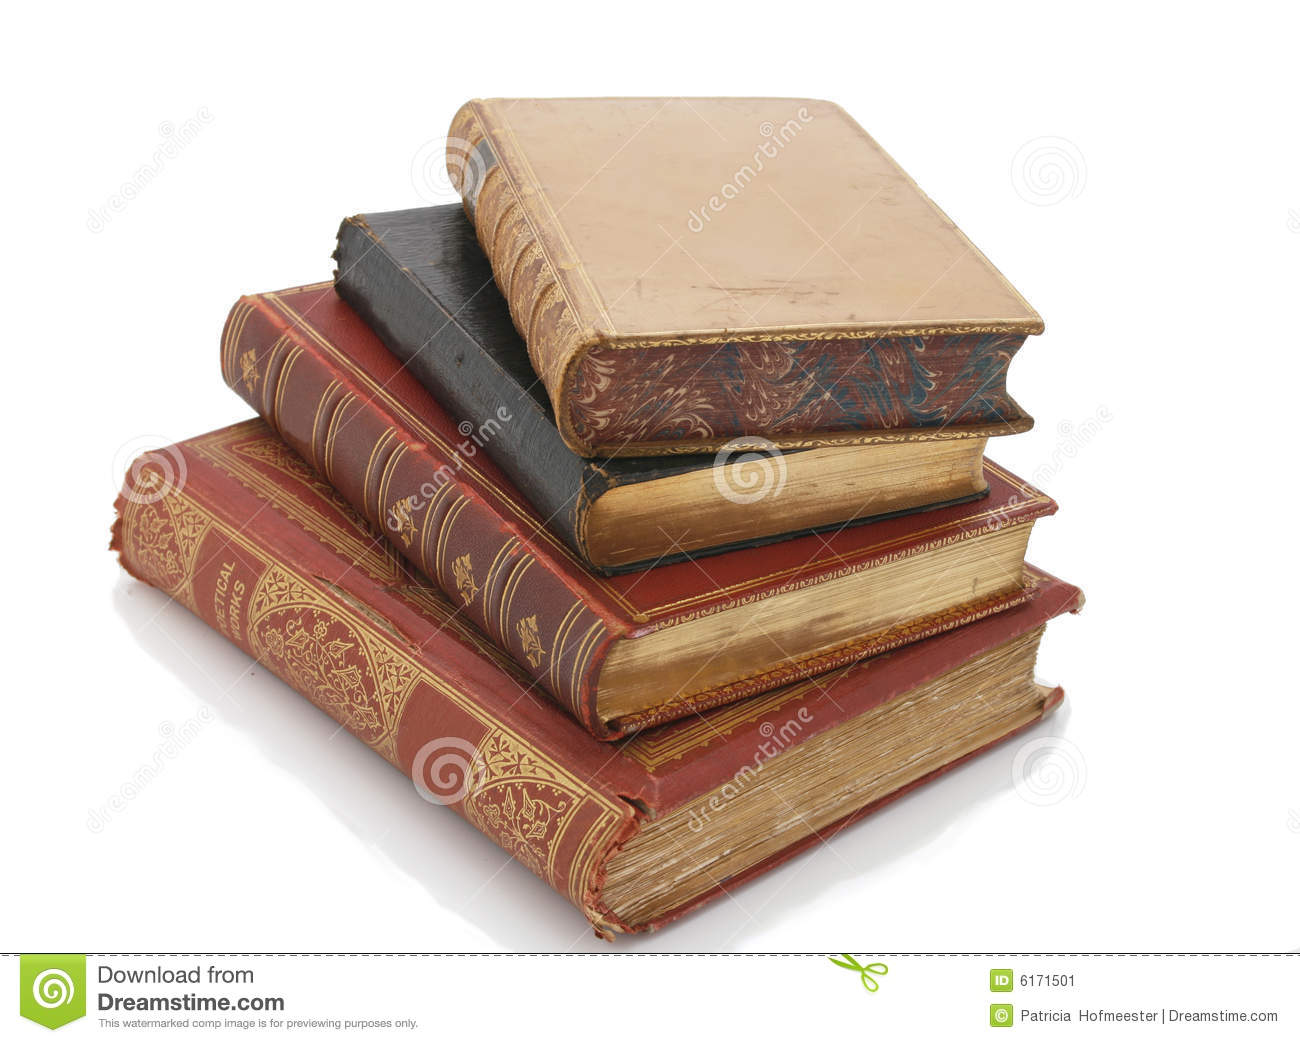 books antique antiquarian stacked very english preview dreamstime